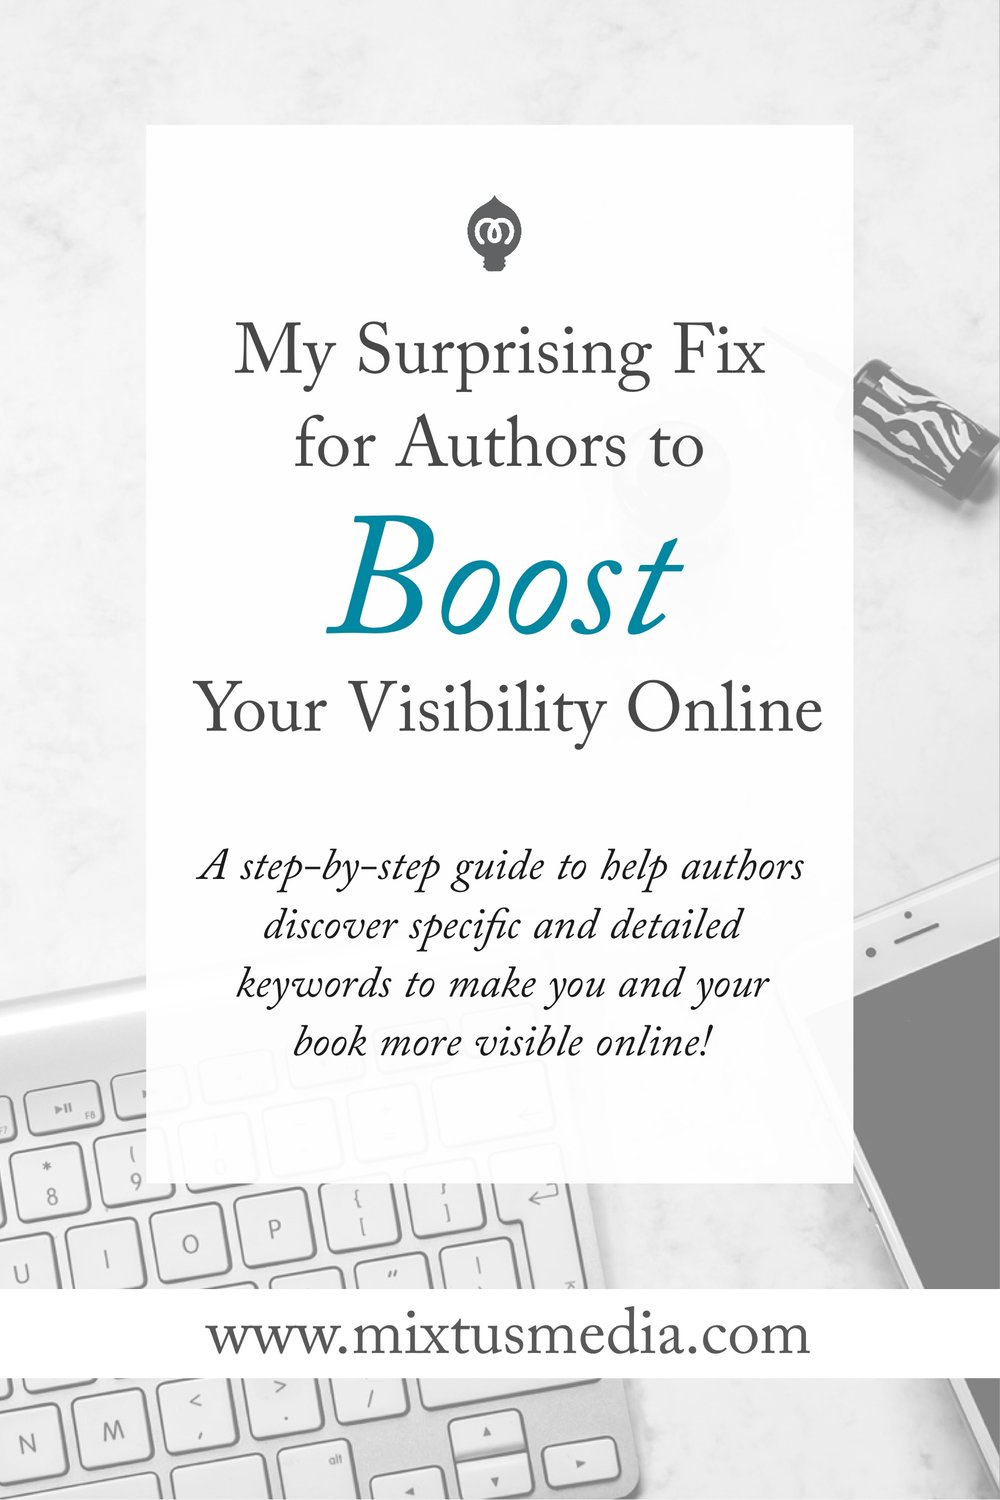 A step-by-step guide to help authors discover specific and detailed keywords to make you and your book more visible online!